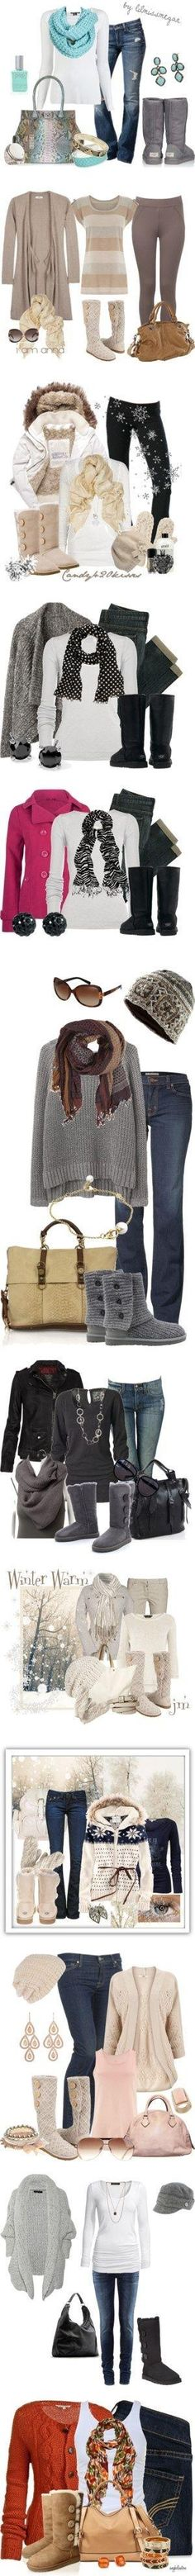 These are great winter outfits featuring many different styles of UGG Boots! So cute! by ajct